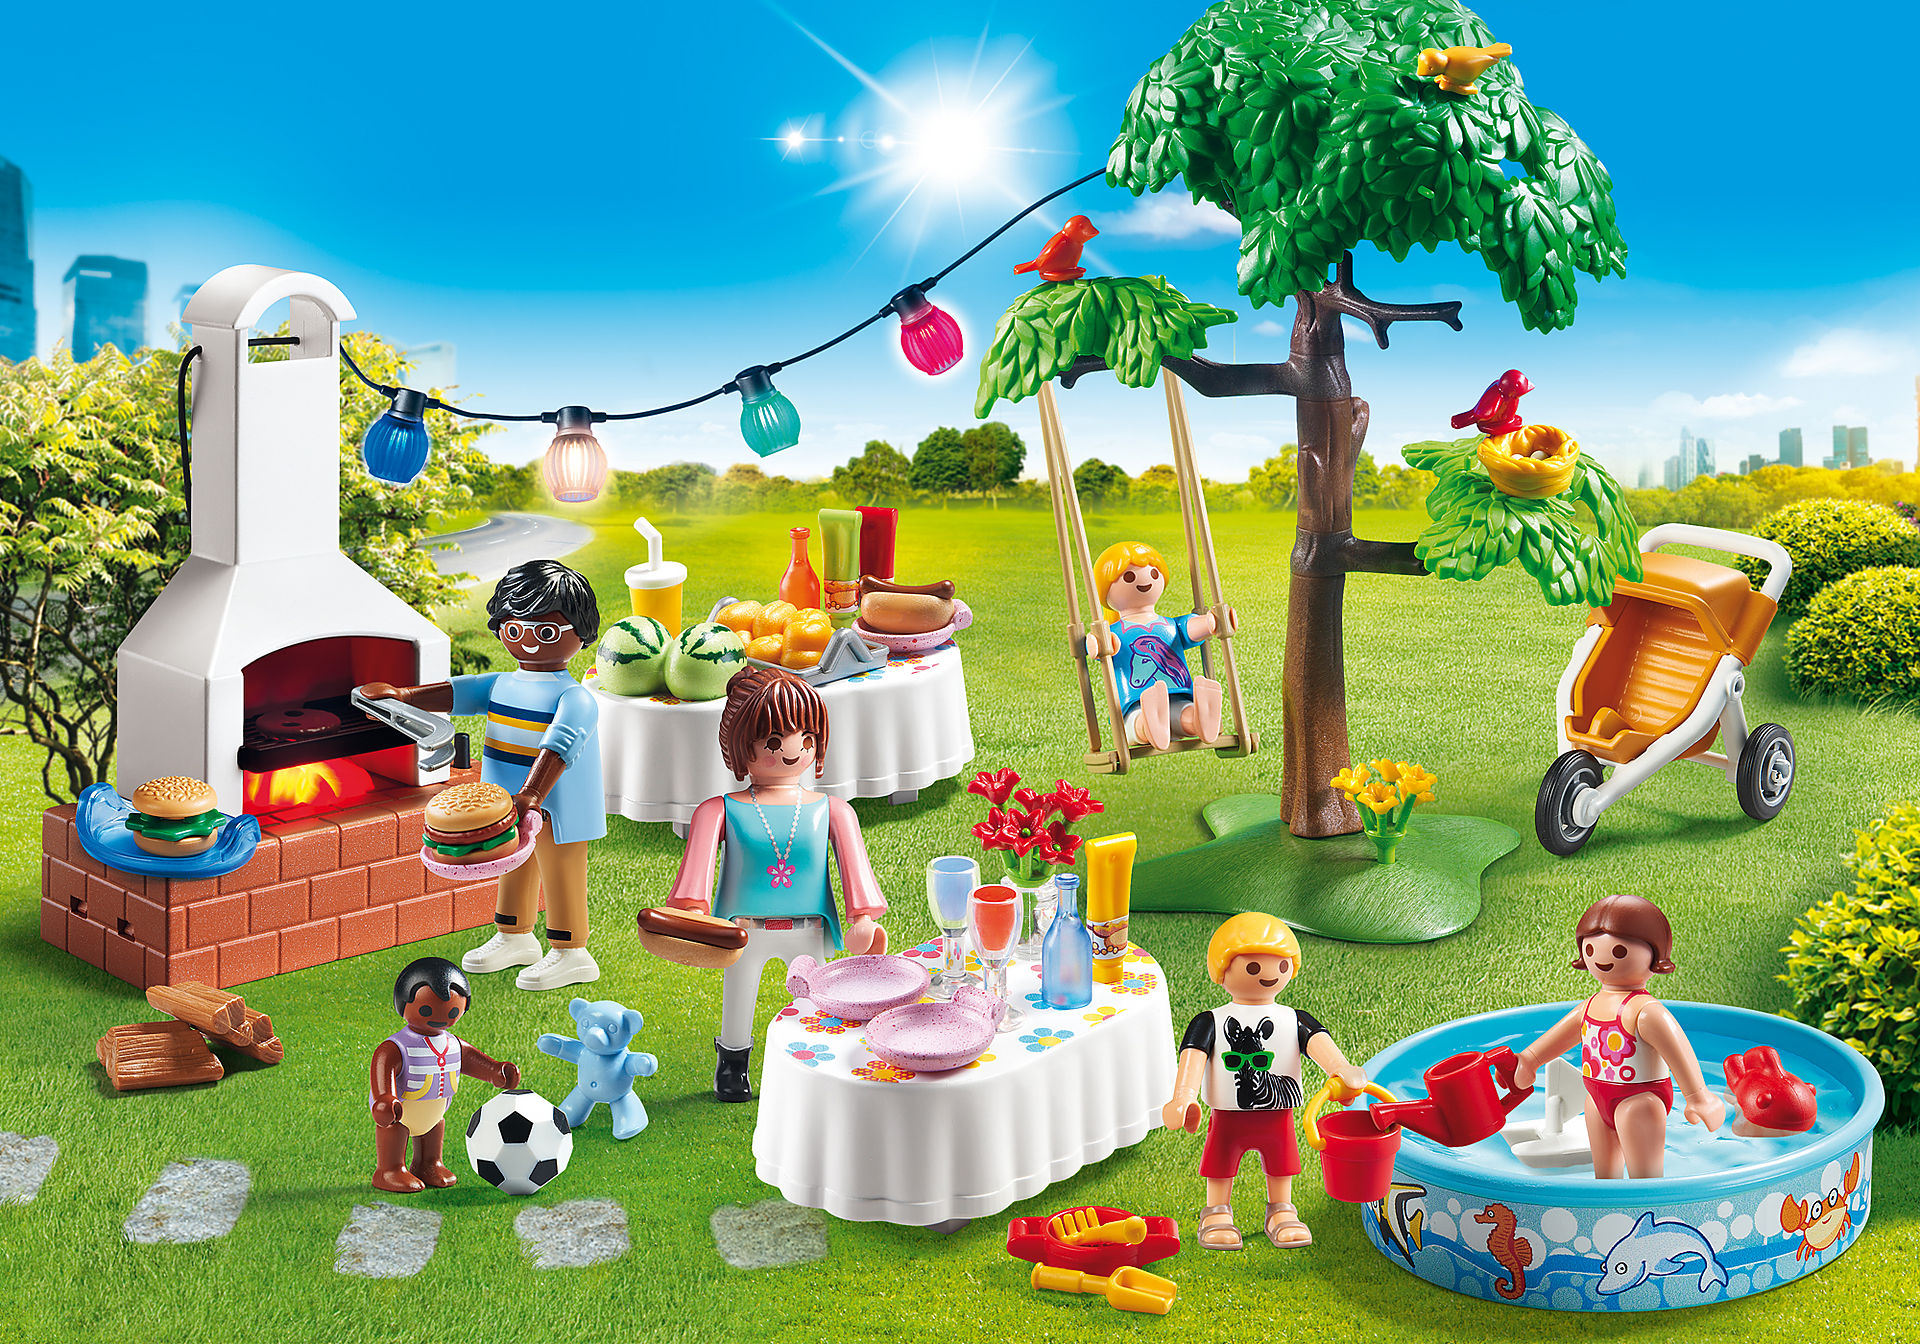 http://media.playmobil.com/i/playmobil/9272_product_detail/Famille et barbecue estival